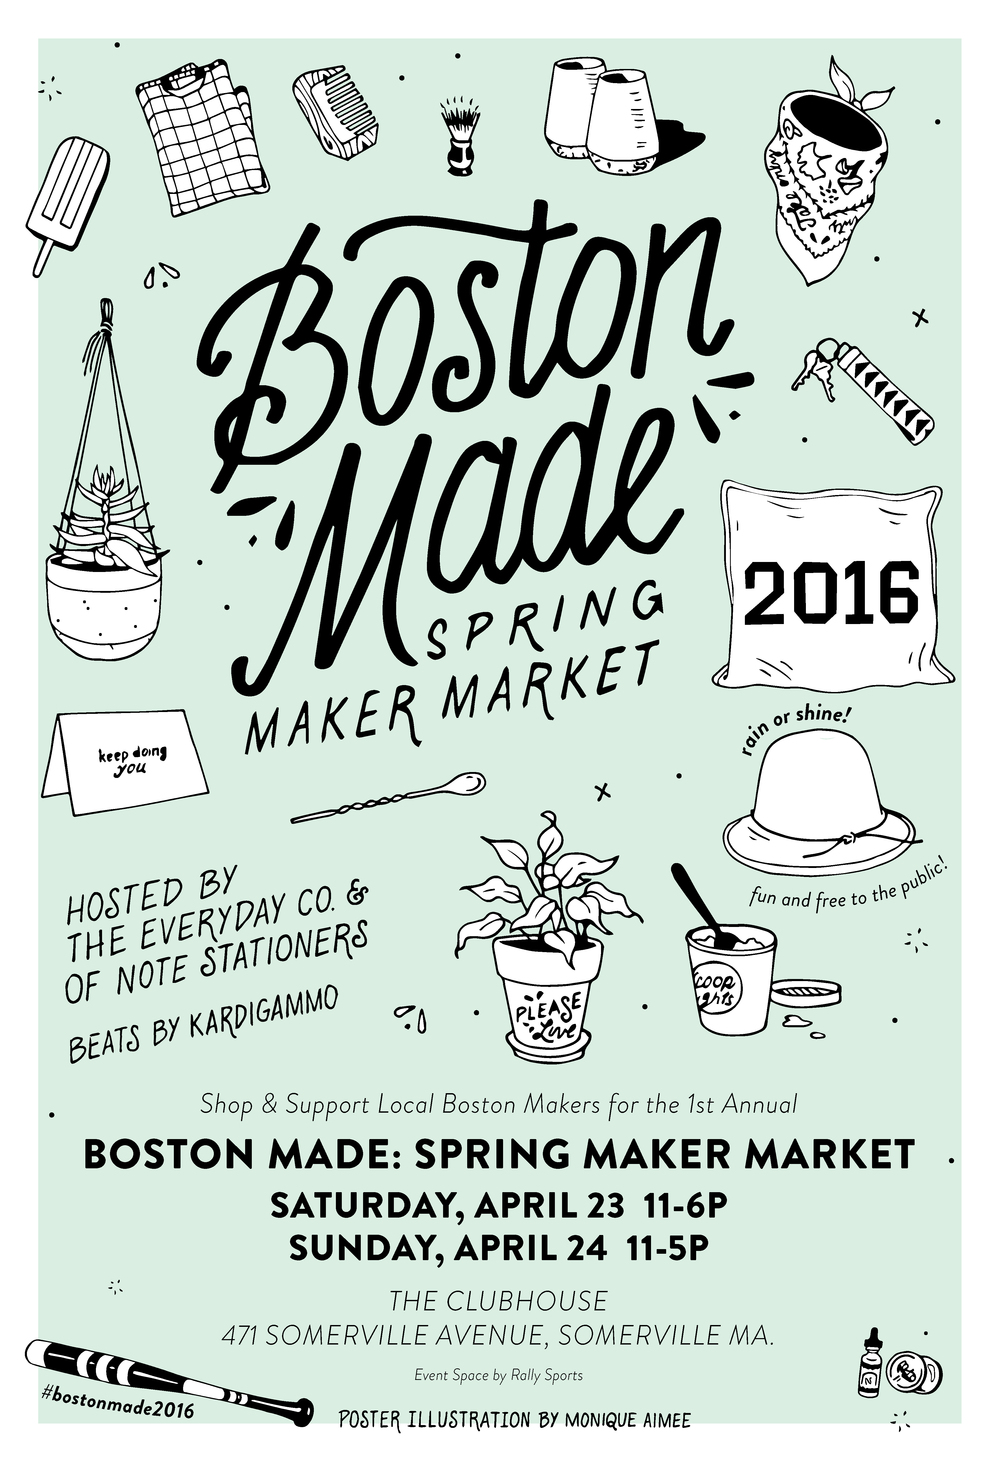 BOSTON-MADE-THINGS-TO-DO-SHOW-SPRING-2016-SOMERVILLE- APRIL